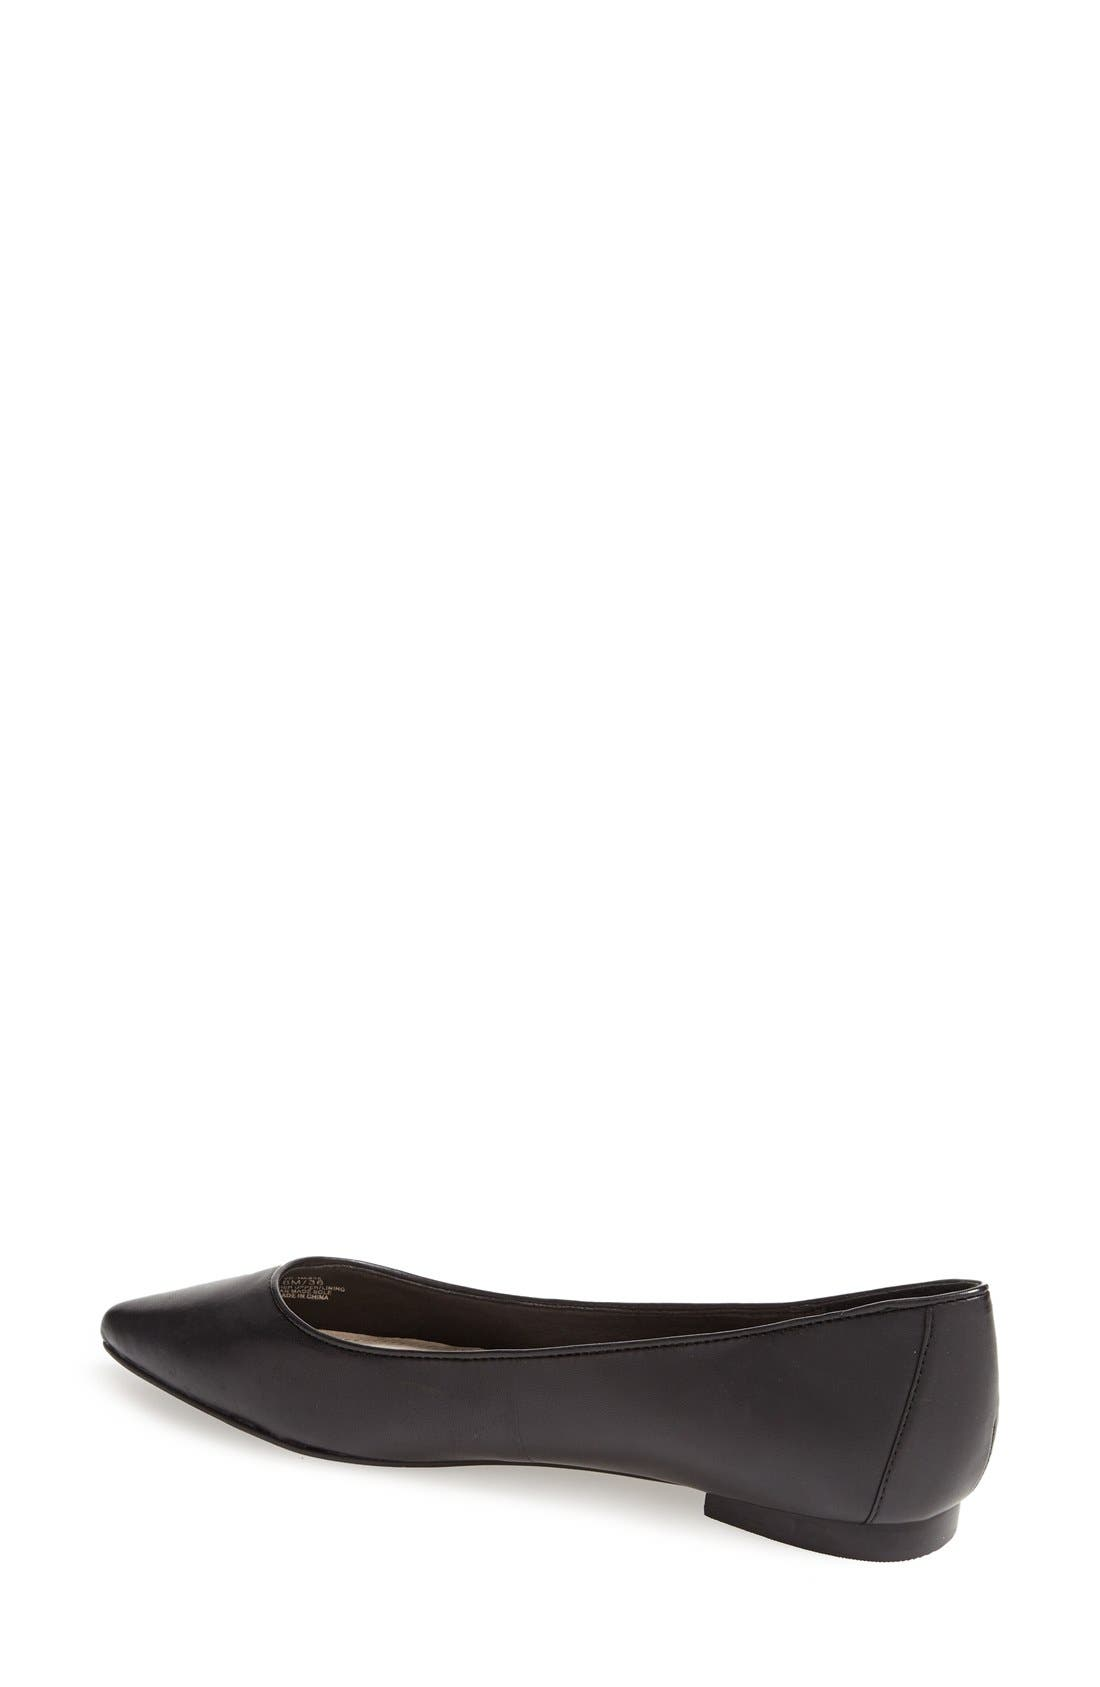 Alternate Image 2  - Vince Camuto 'Hasse' Pointy Toe Flat (Women)